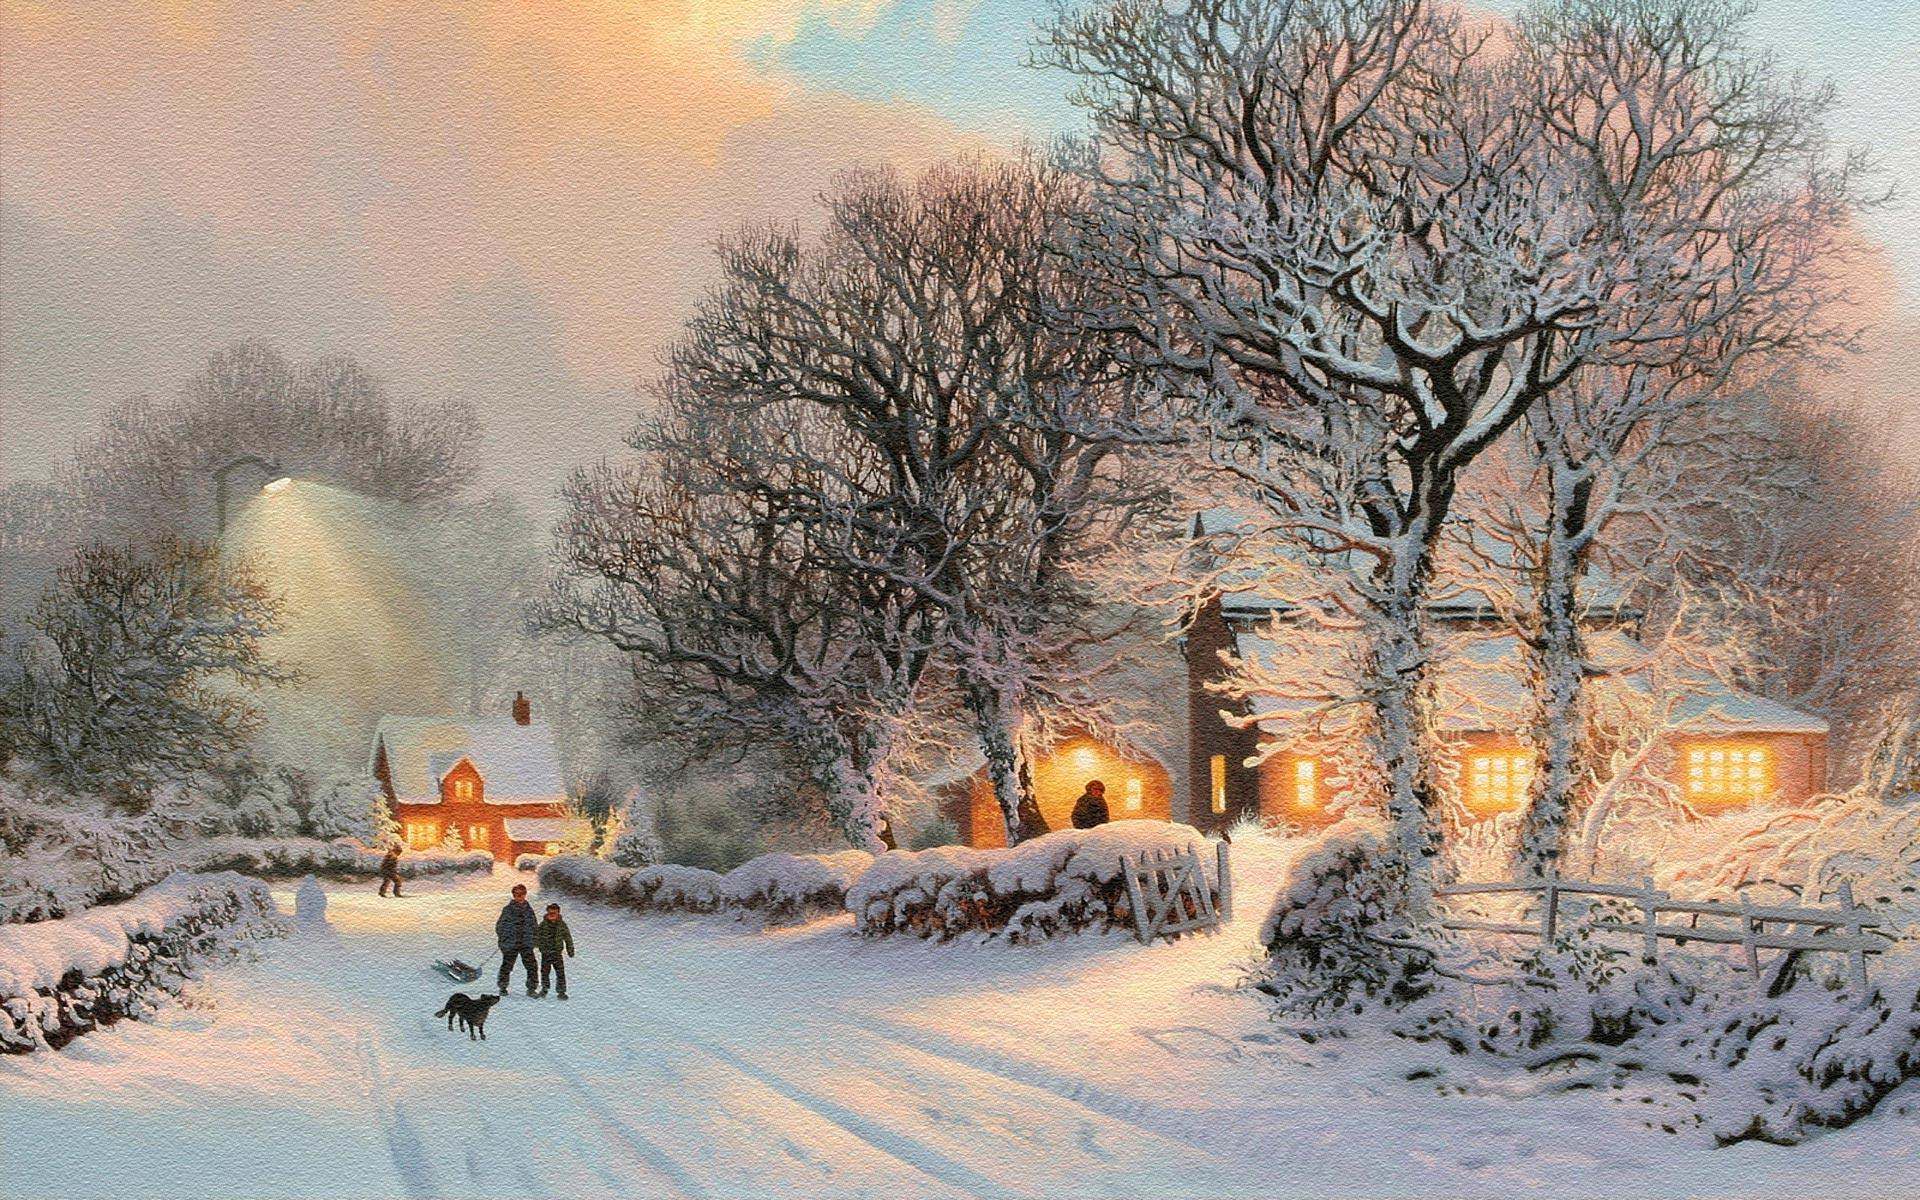 Image For > Christmas Snow Scenery